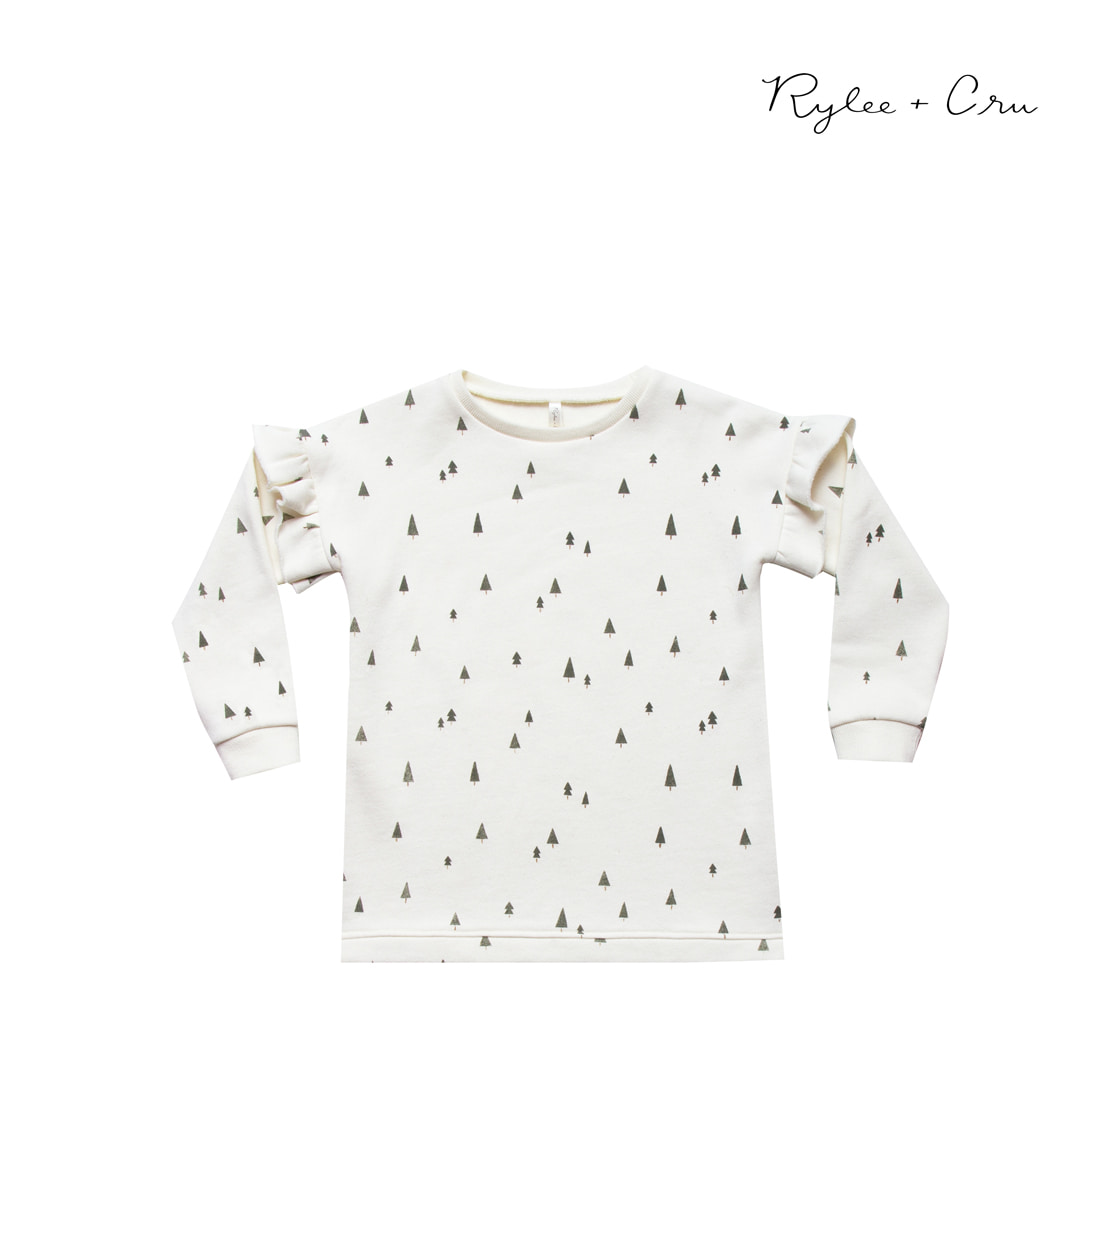 라일리앤크루 TREES SWEATSHIRT DRESS / IVORY